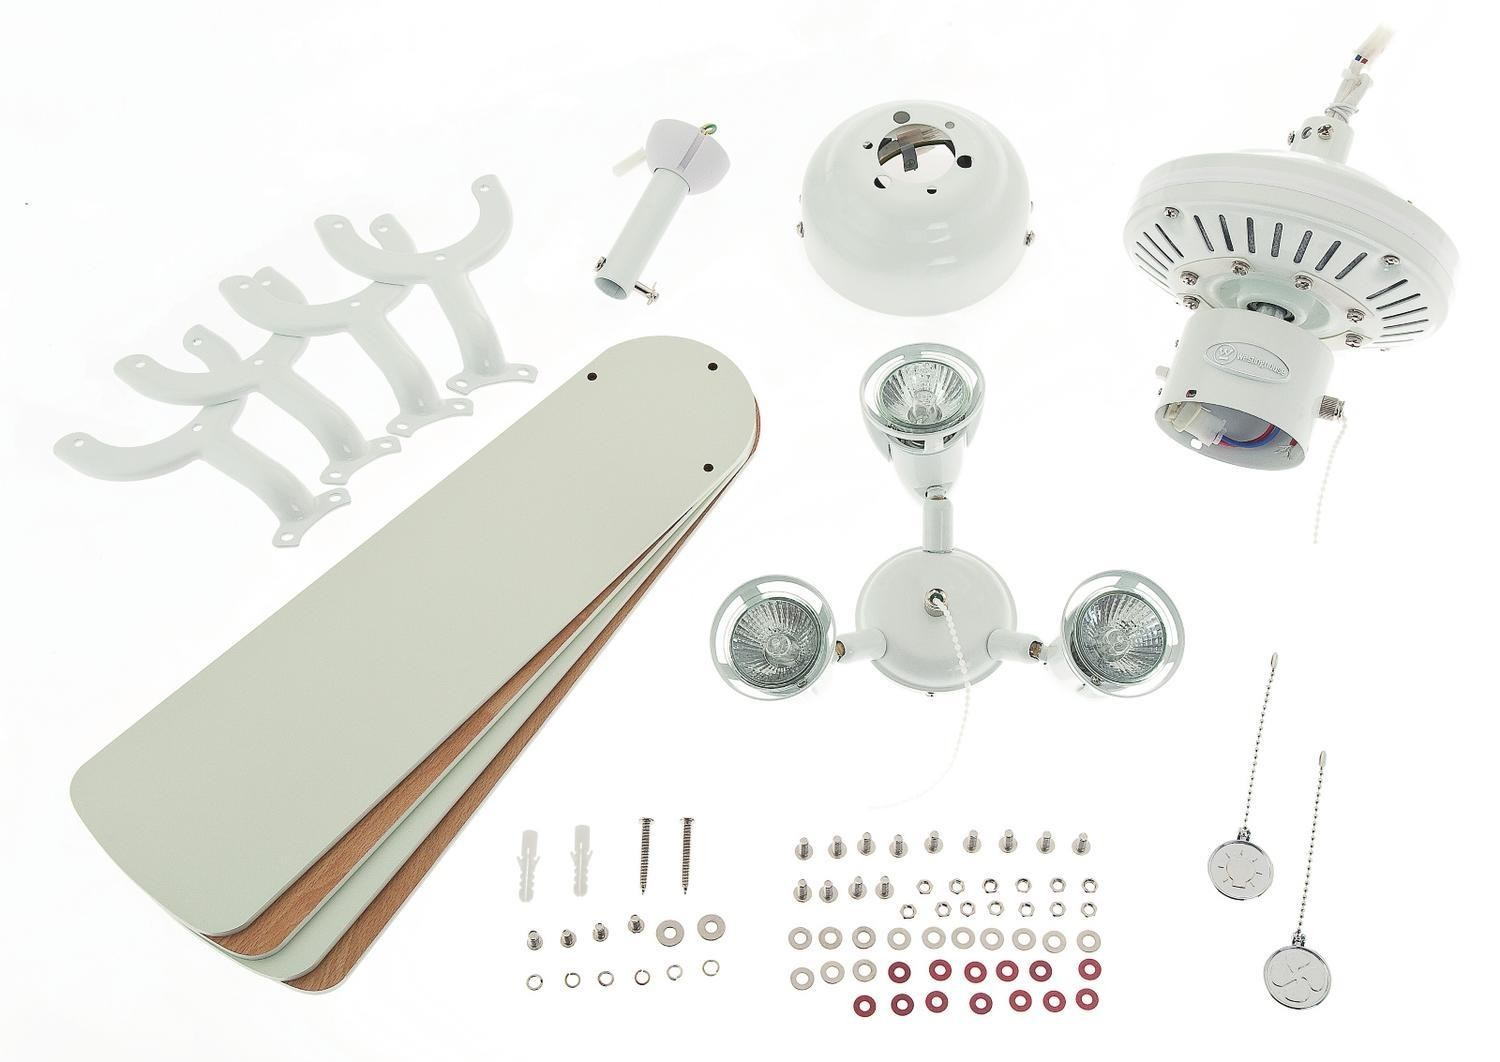 Spare parts for westinghouse ceiling fan 72425 princess euro white spare parts for westinghouse ceiling fan 72425 princess euro white description accessories aloadofball Choice Image